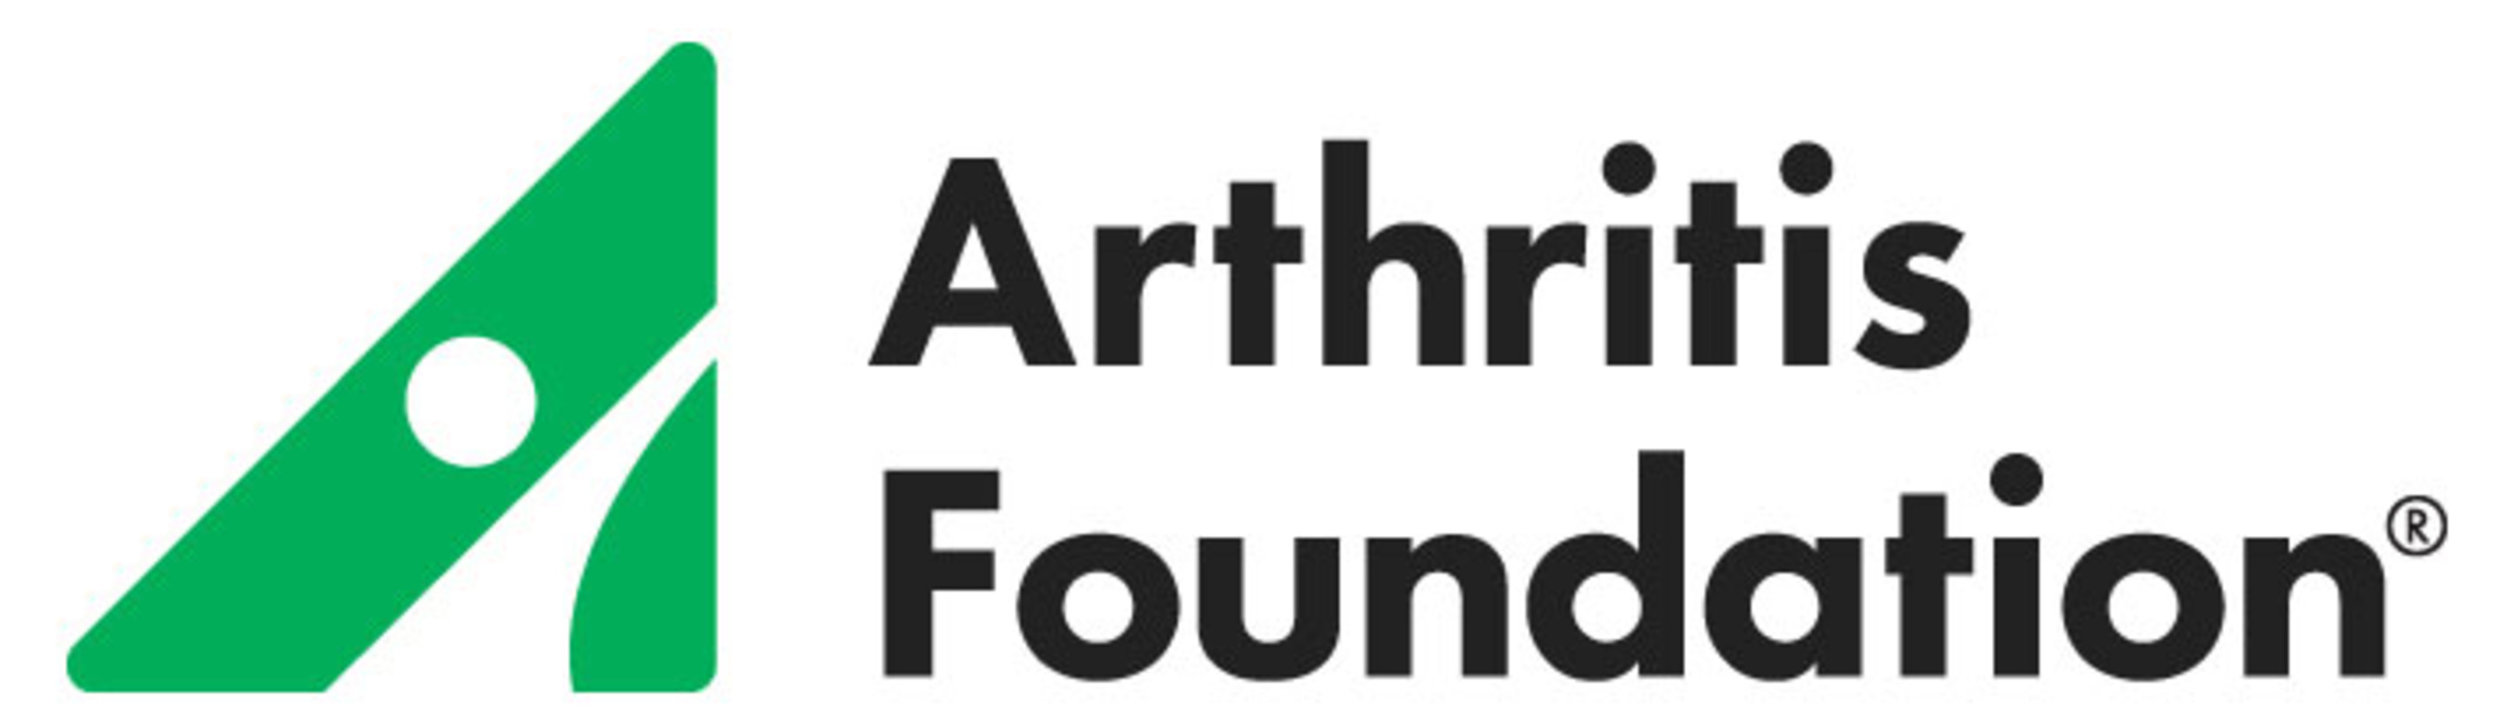 arthritis-foundation.jpg